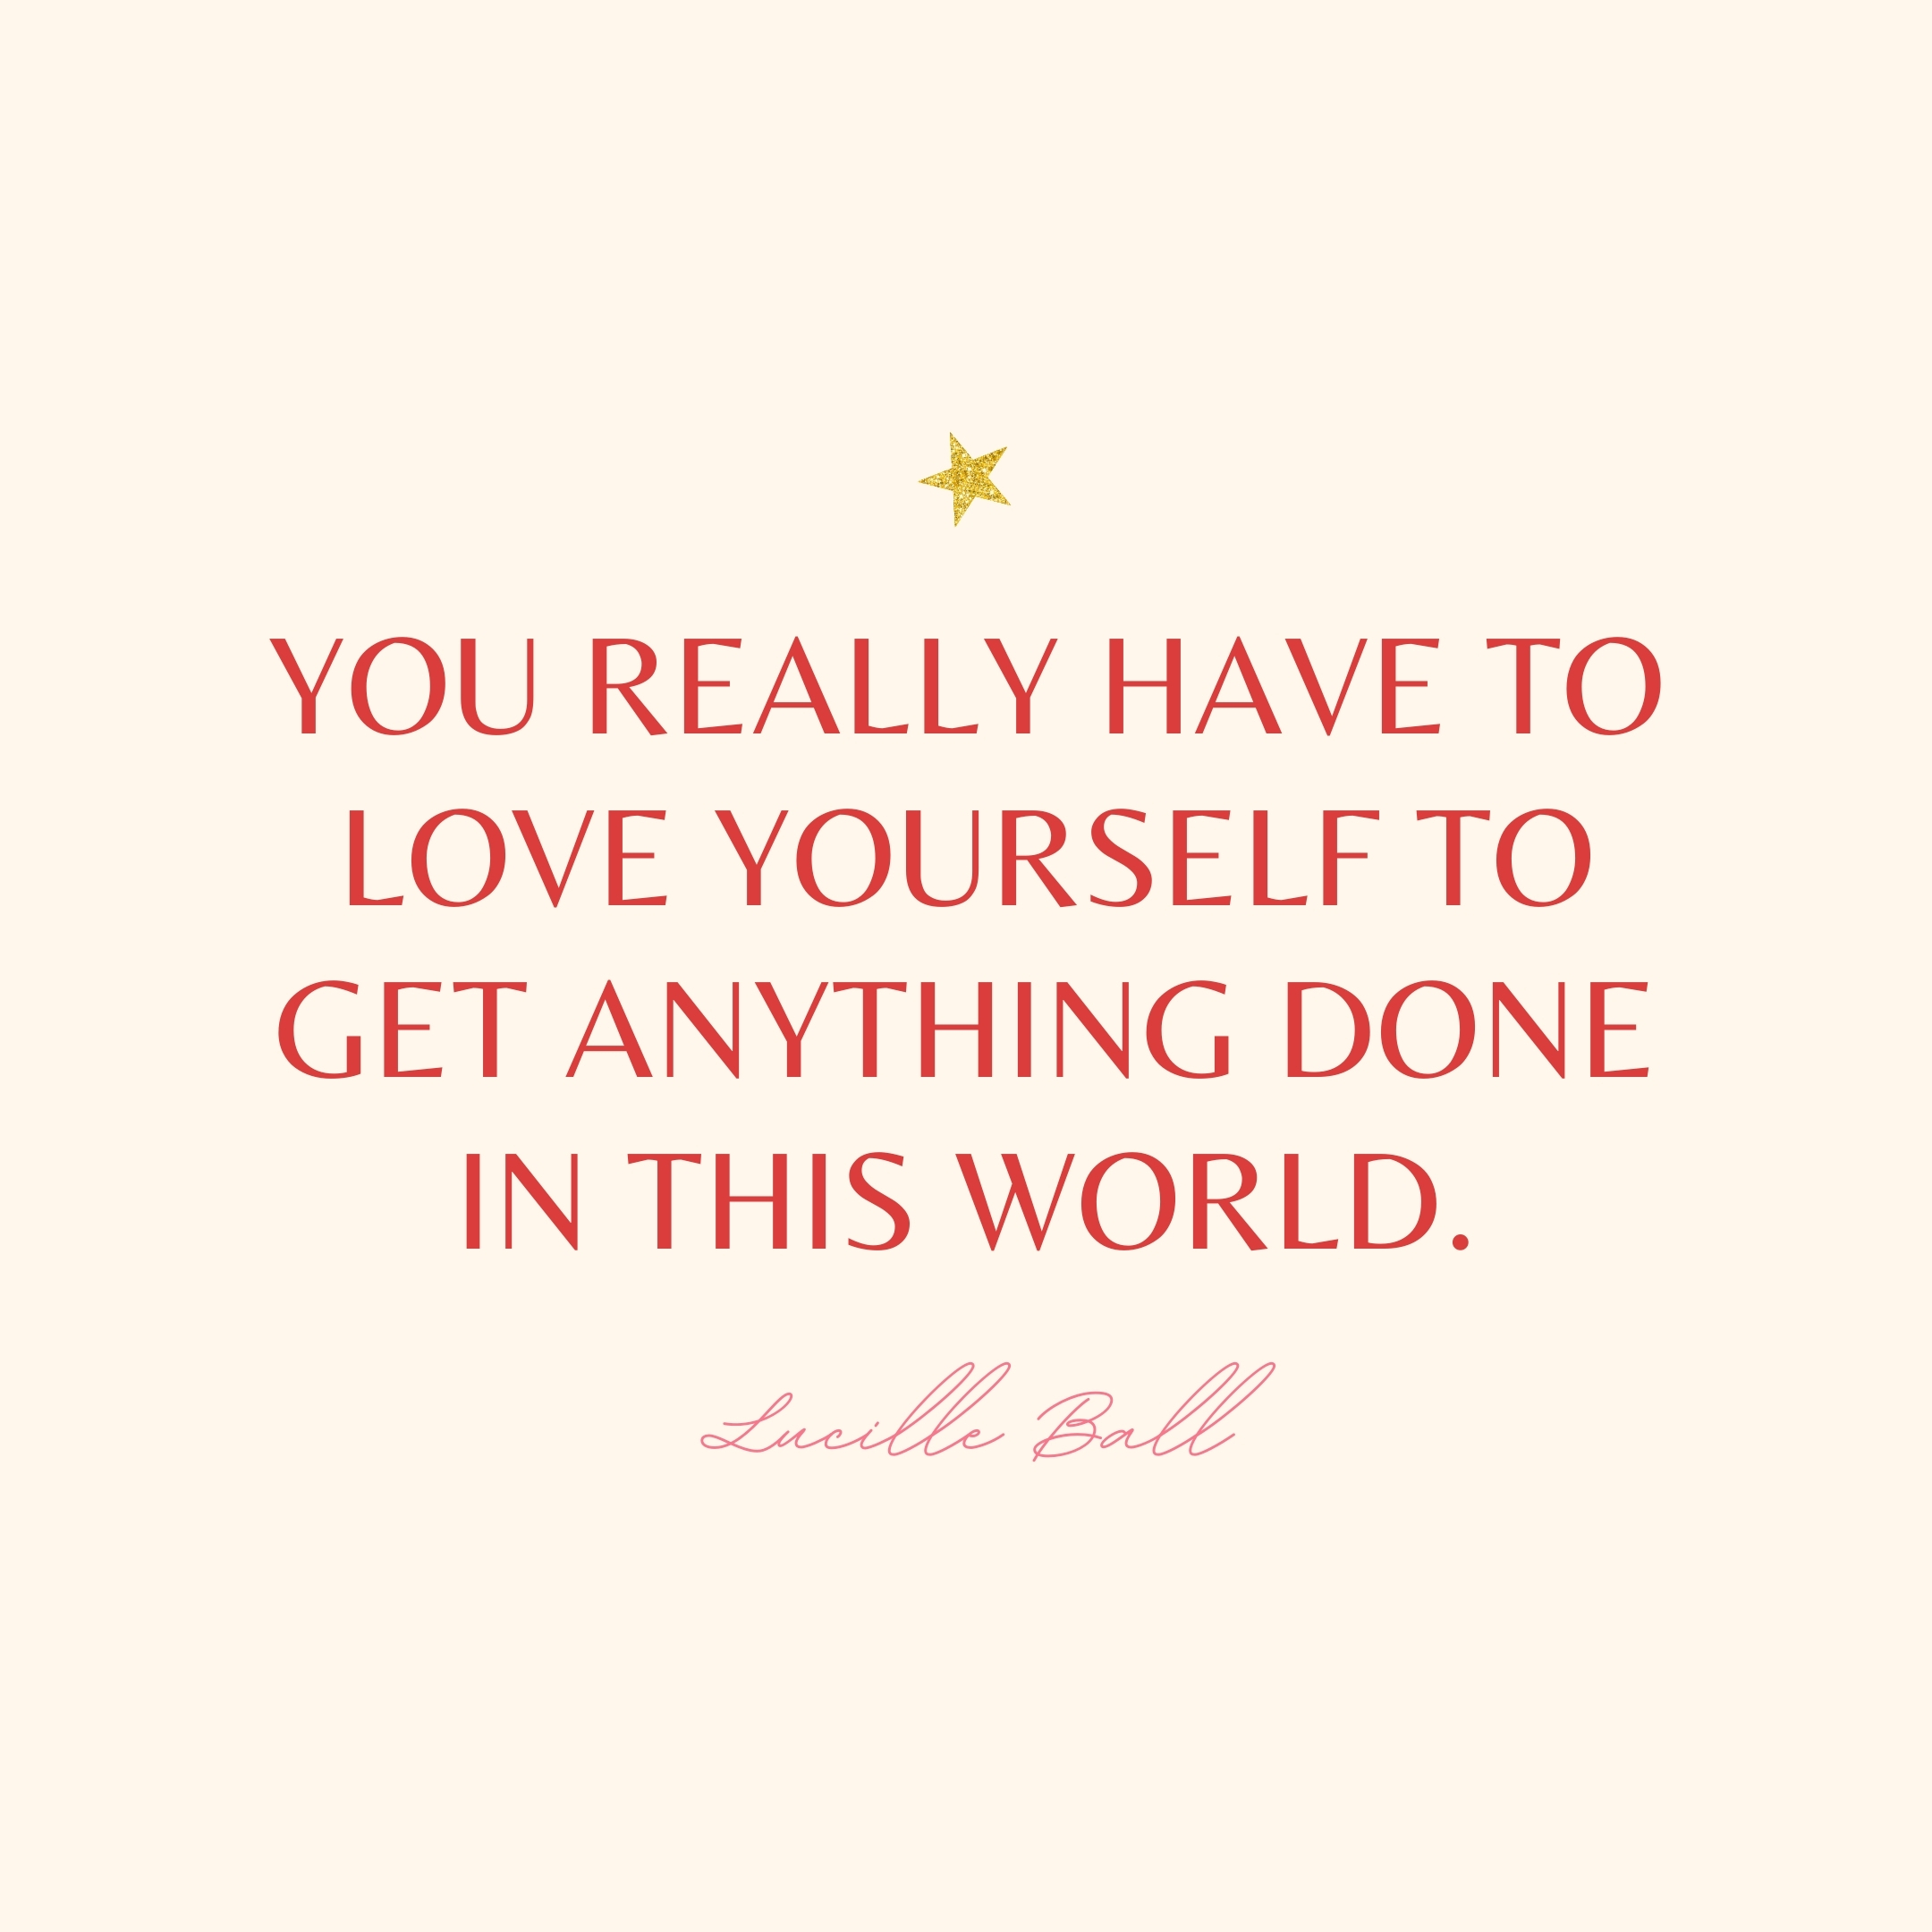 lucille ball quote | monday motivation quotes